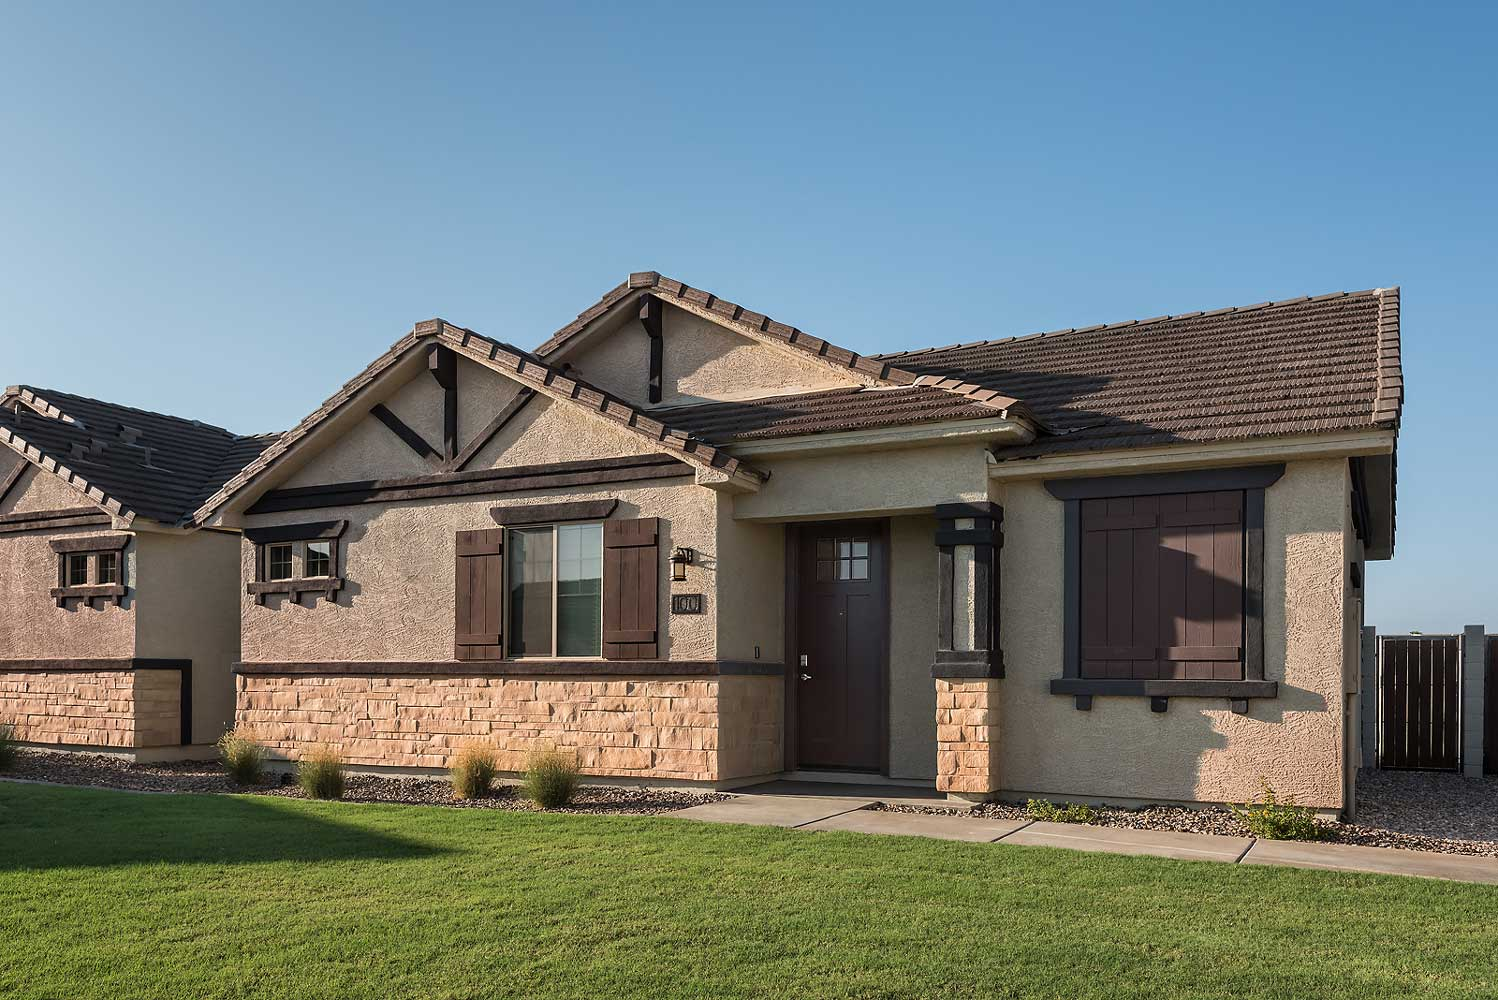 Single-Story Living with Private Backyard at Harvard Crossing Apartments in Goodyear, AZ